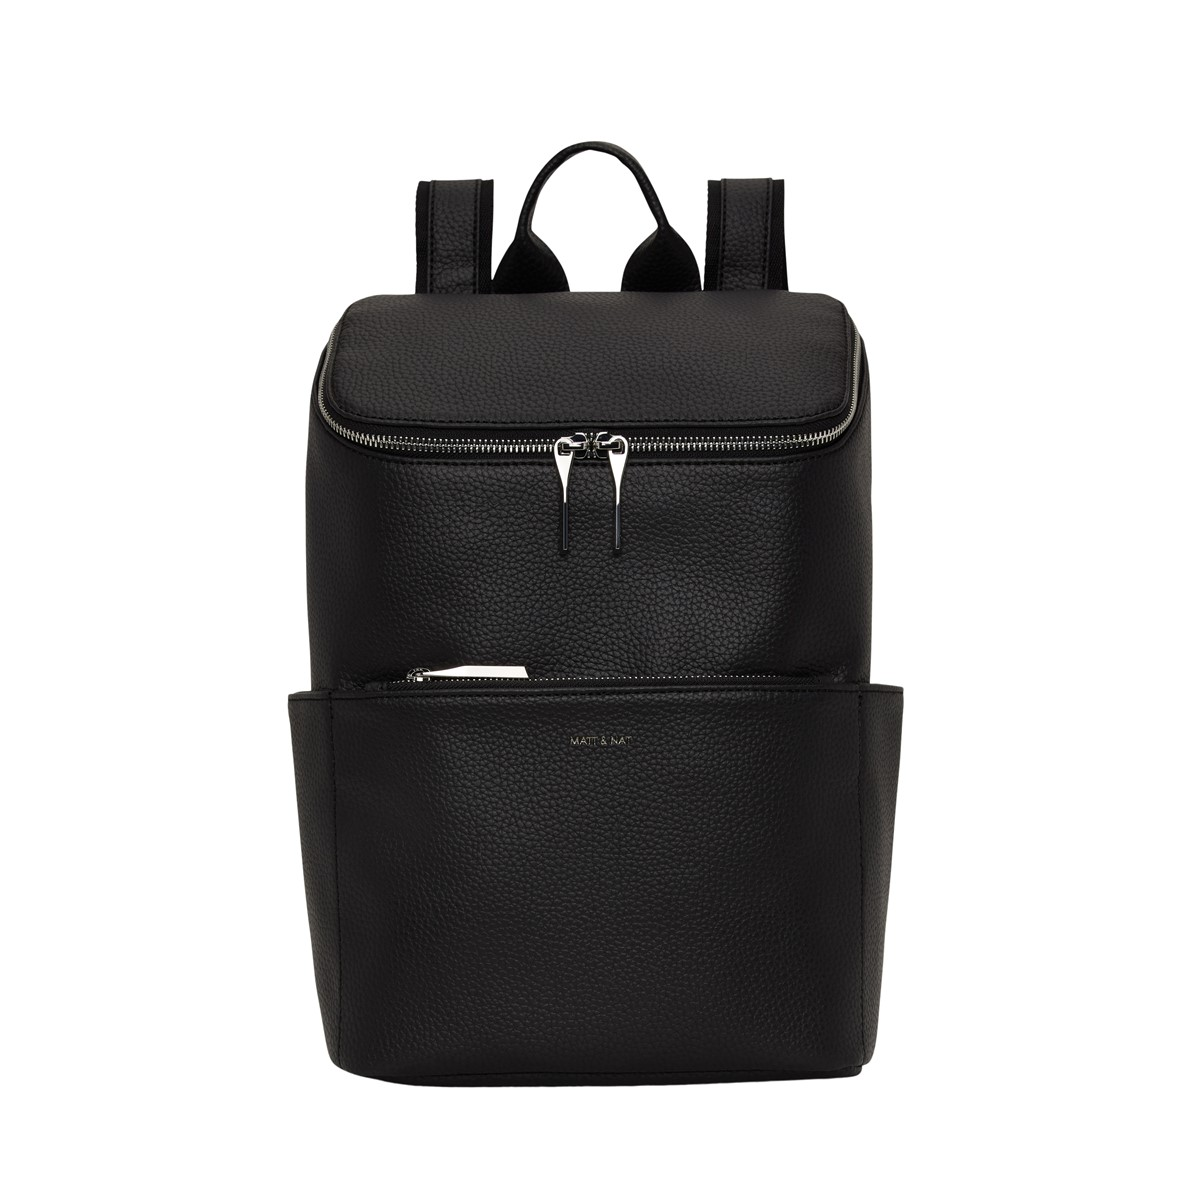 Brave Purity Backpack in Black